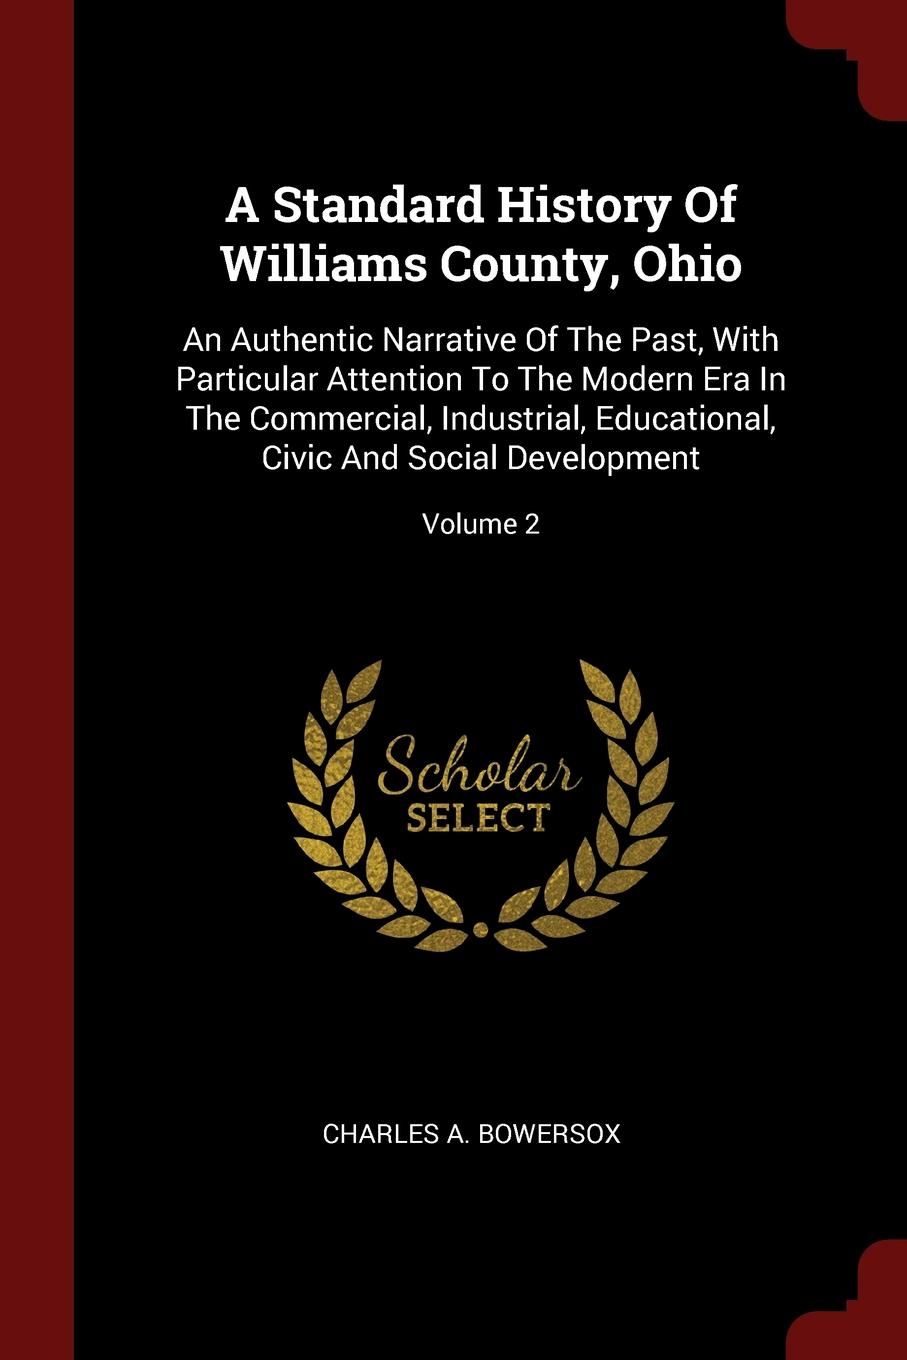 Charles A. Bowersox A Standard History Of Williams County, Ohio. An Authentic Narrative Of The Past, With Particular Attention To The Modern Era In The Commercial, Industrial, Educational, Civic And Social Development; Volume 2